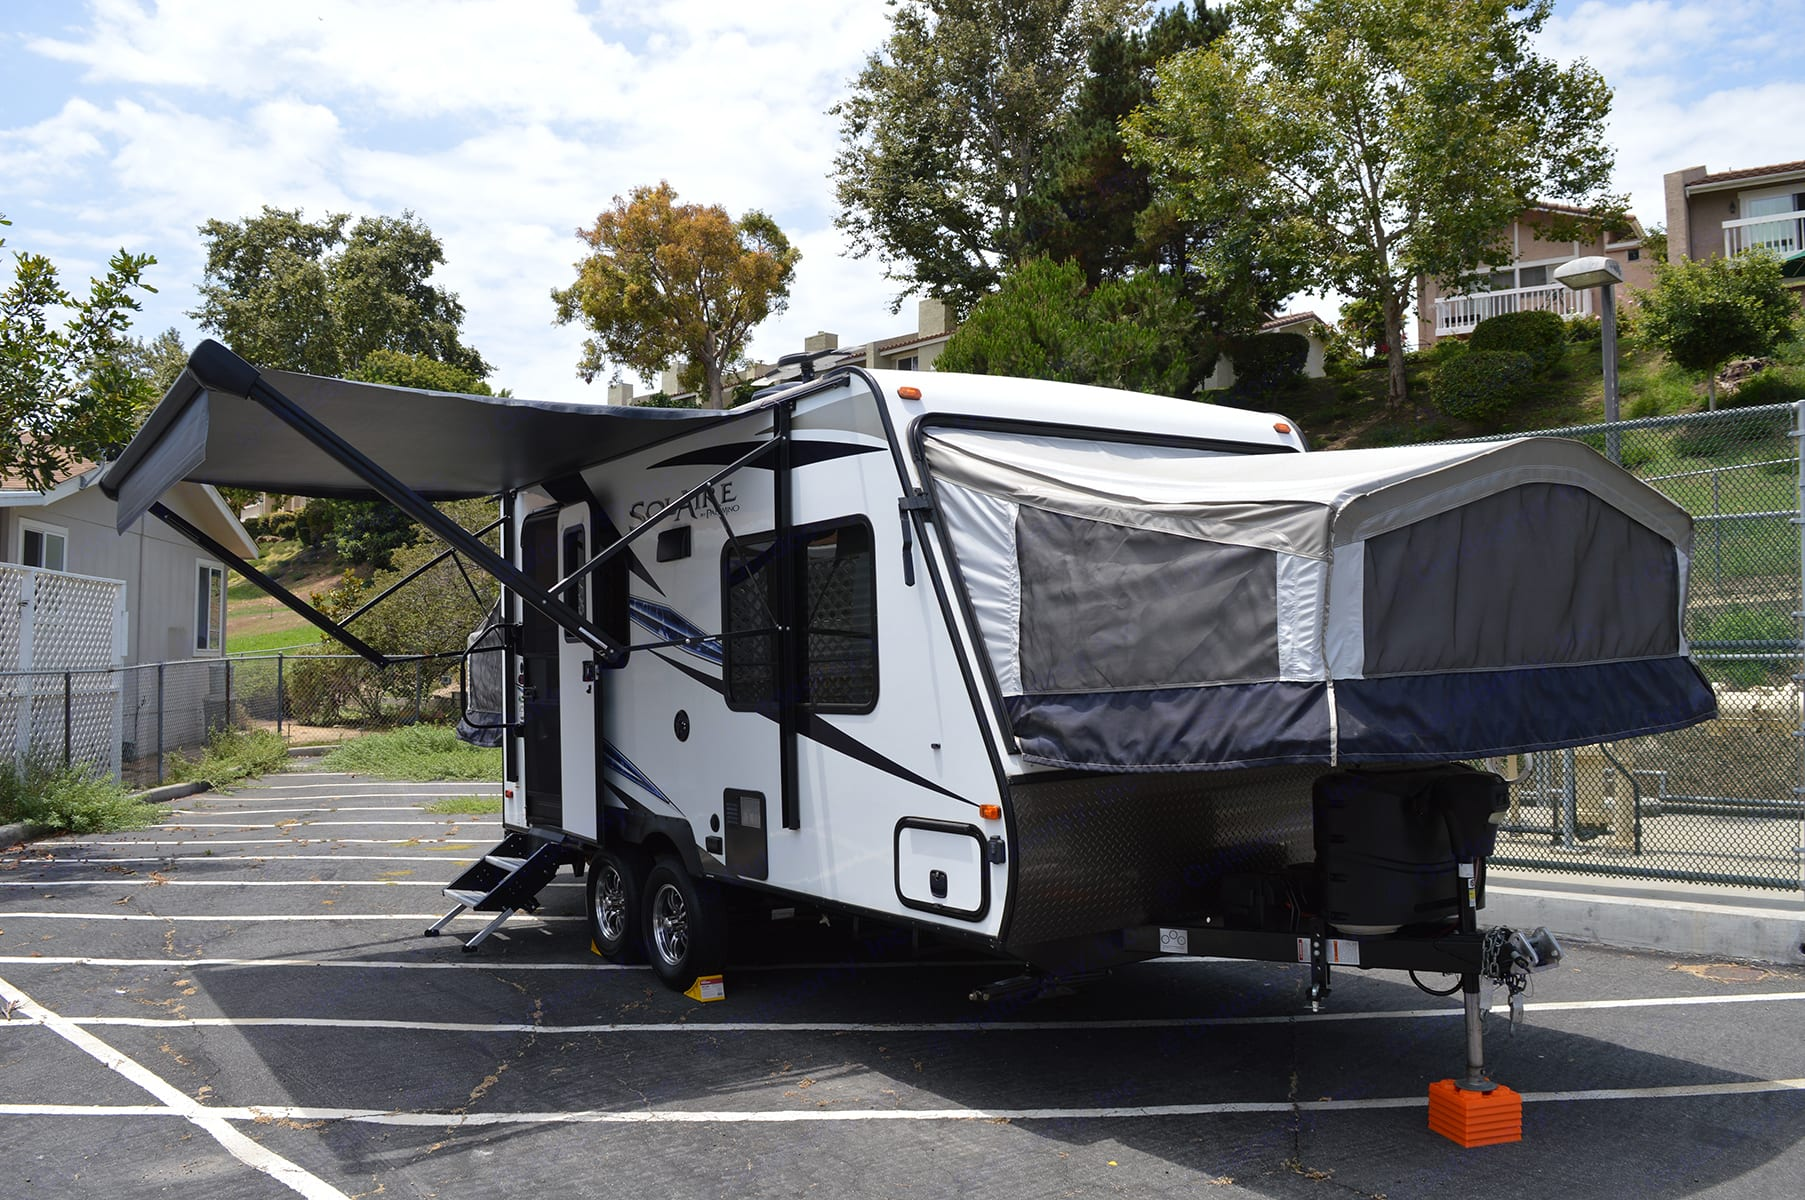 Front bed and Awning extended. Palomino Solaire Expandable 2020